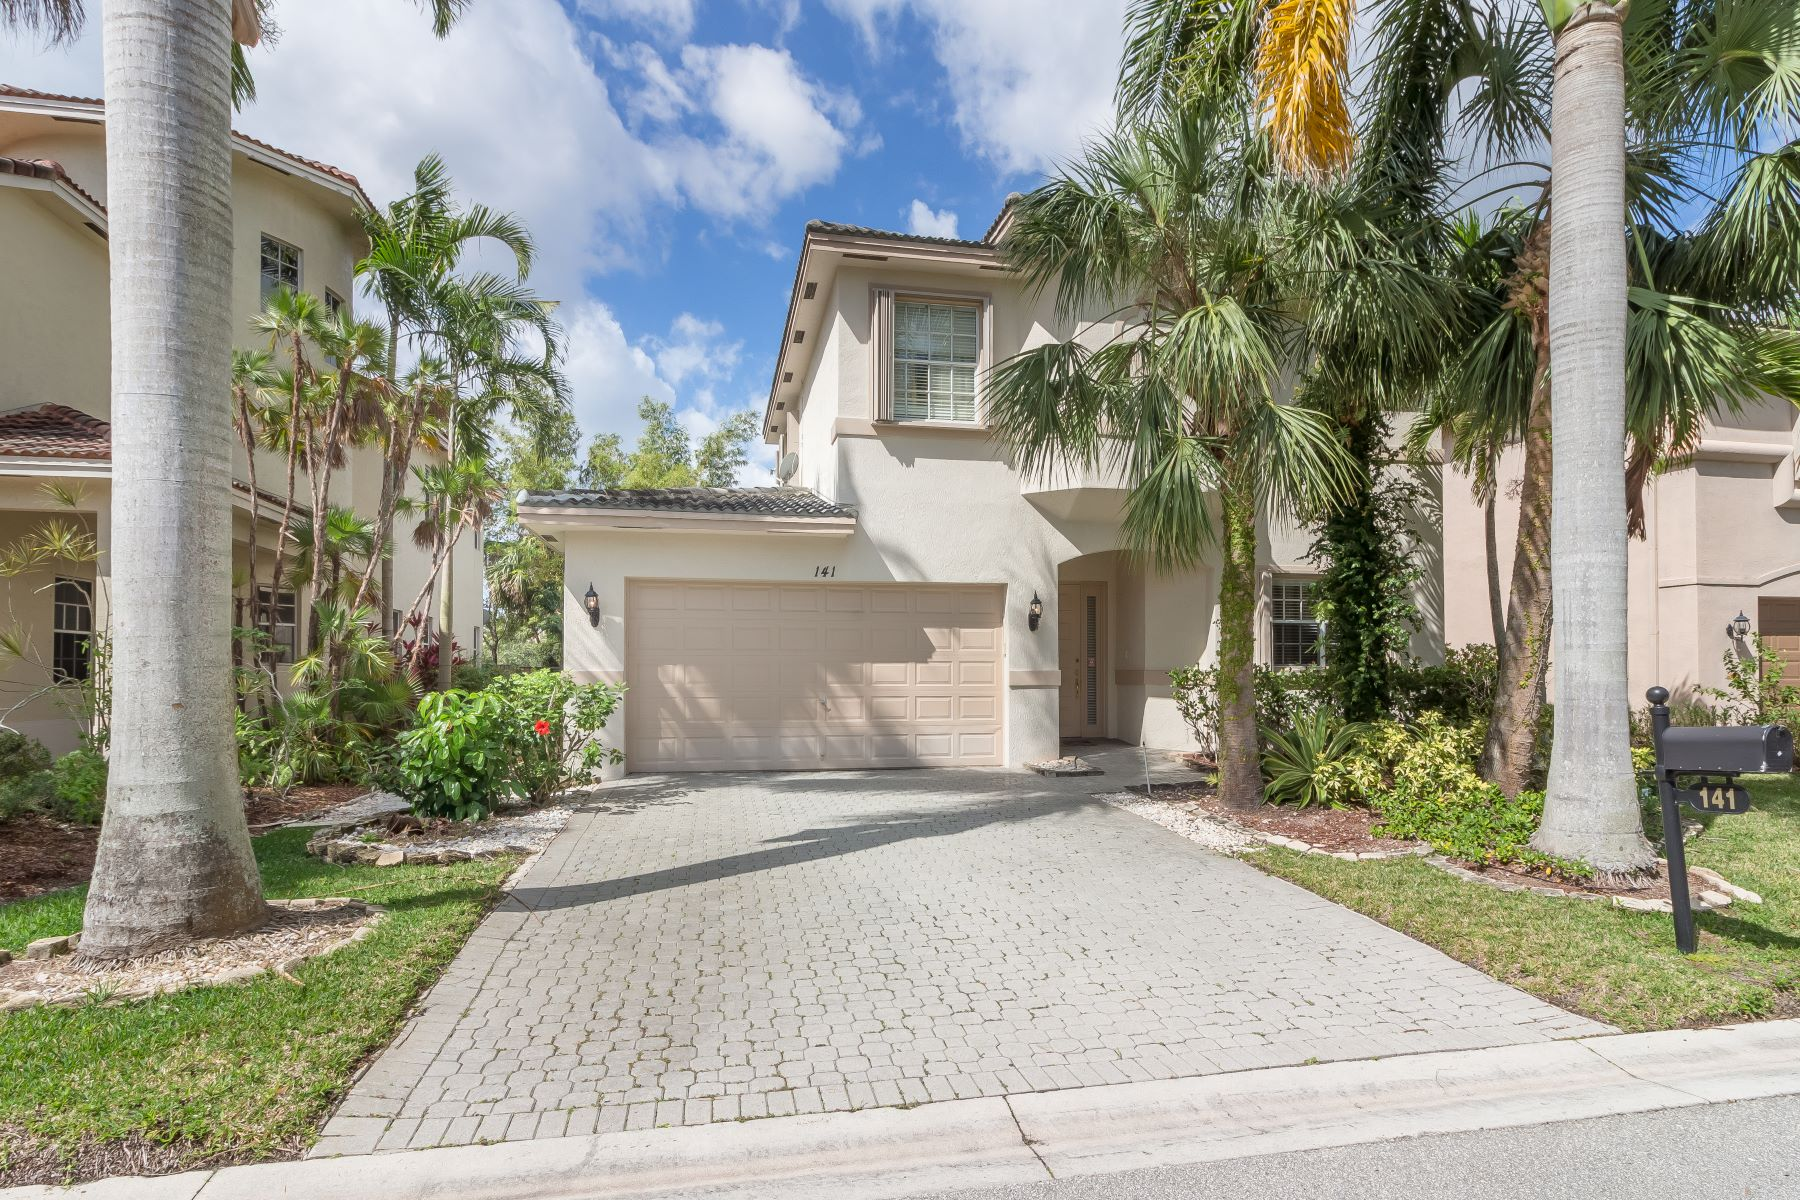 House for Sale at 141 Nw 117th Ter 141 Nw 117th Ter Plantation, Florida 33325 United States